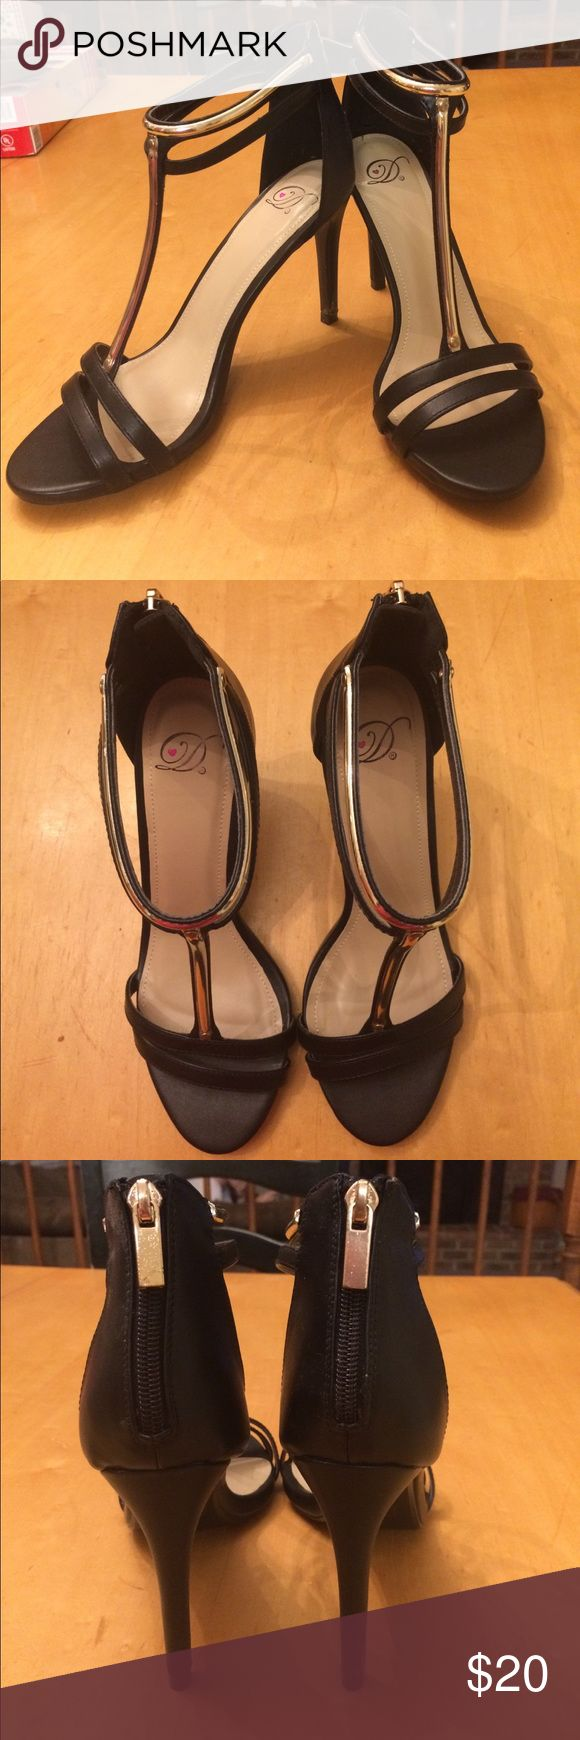 Cute gold and black heels Super cute gold and black heels! Only worn a couple times but still in good condition! See slight wear on the bottom Charlotte Russe Shoes Heels